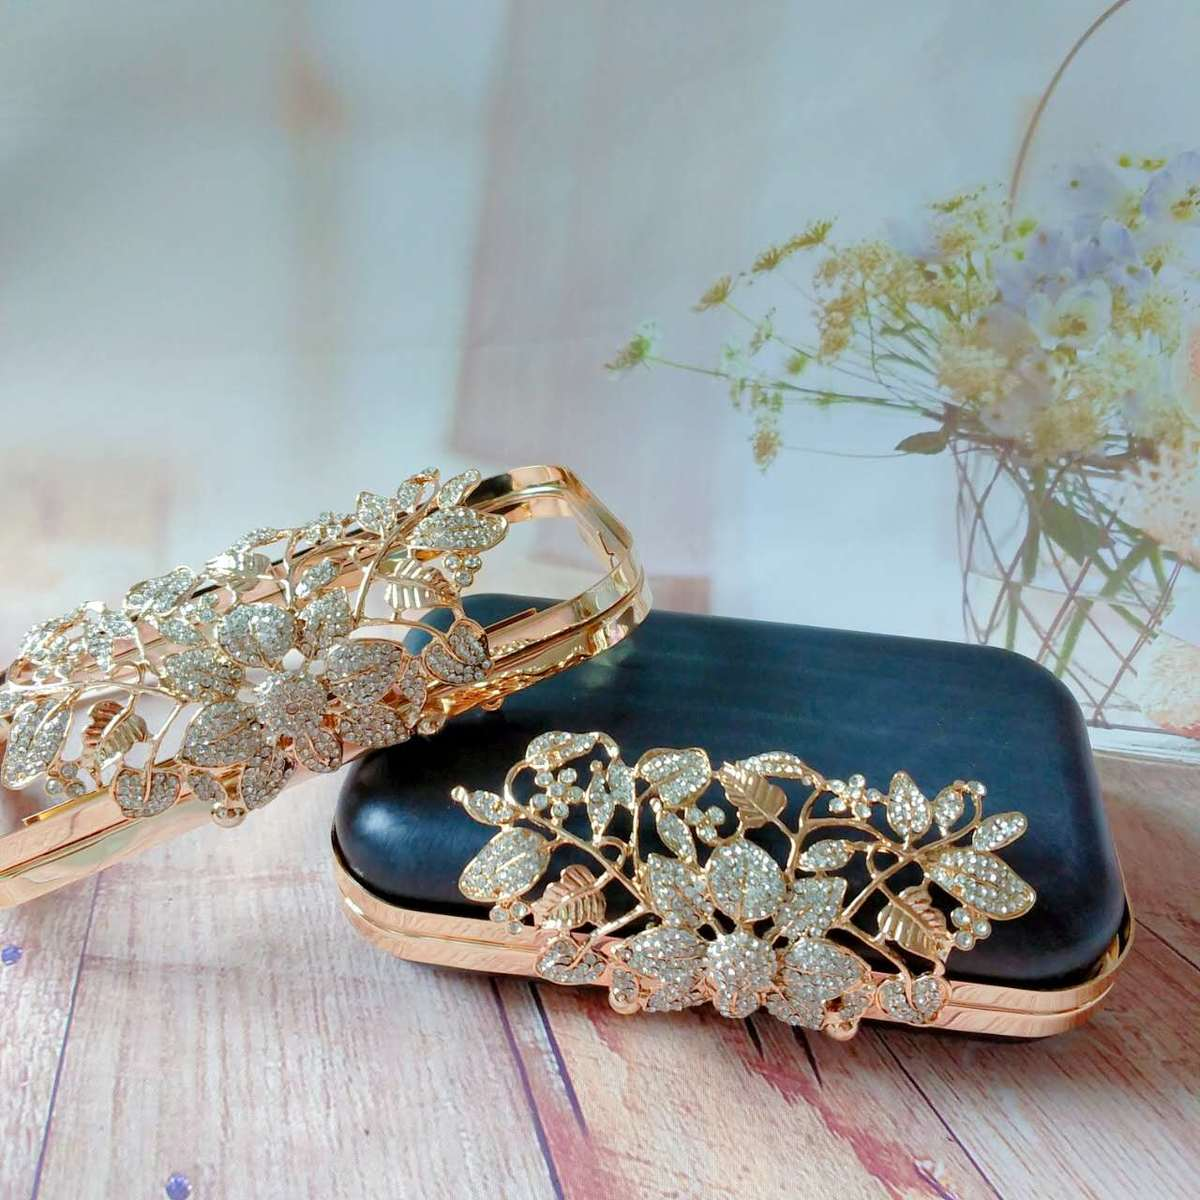 Manual Package Export Gold DIY Leaf Case The Golden Mouth Is Shallow. Golden Silver Leaf Full Package Send Paper Type Pattern